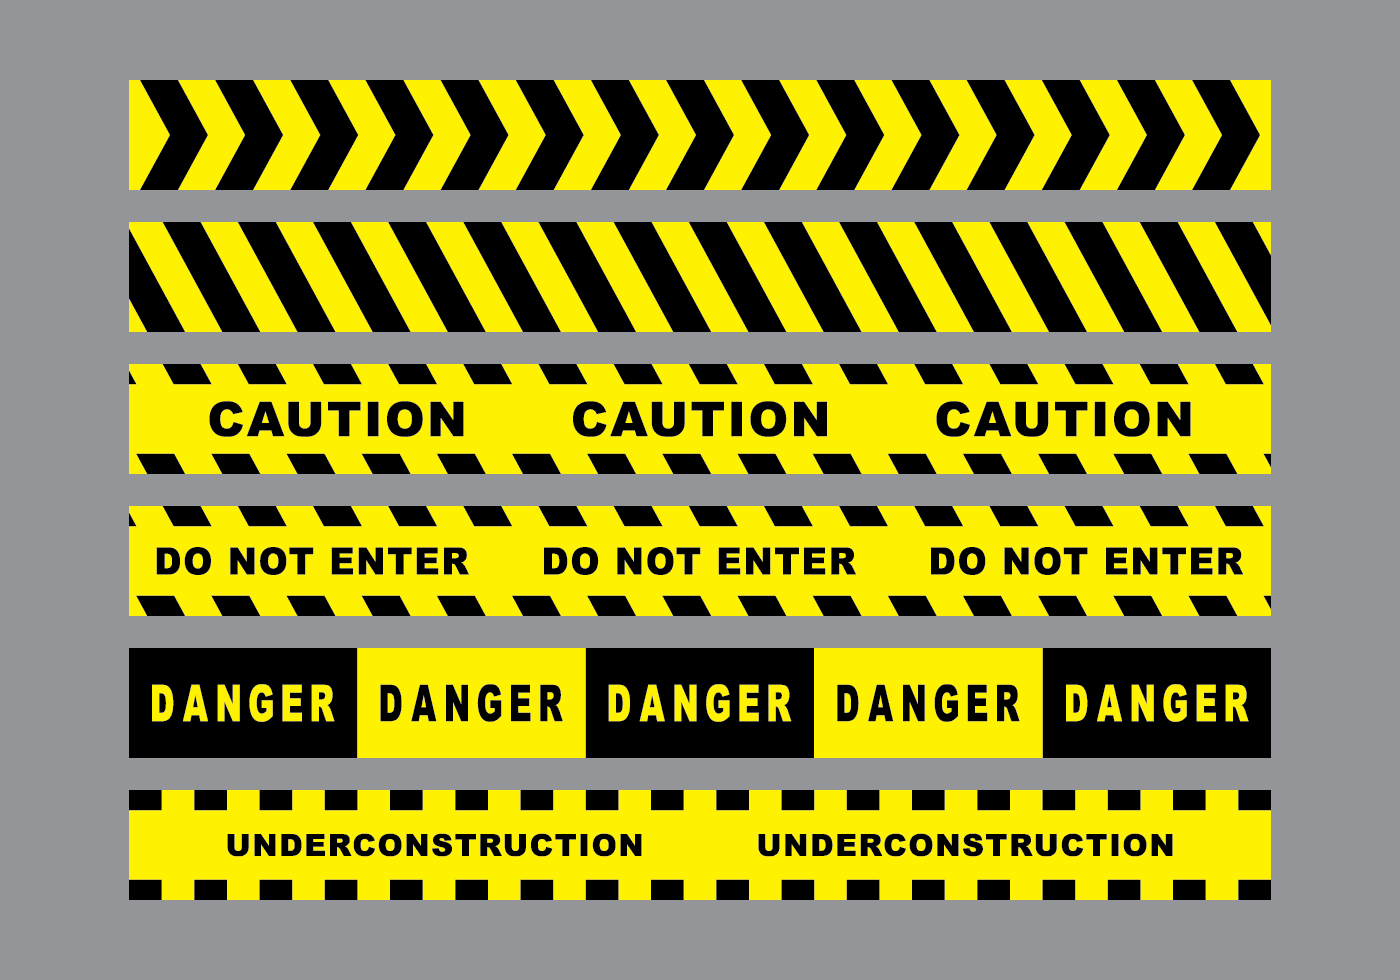 Under Construction Tape Background Caution Tape Free Vect...